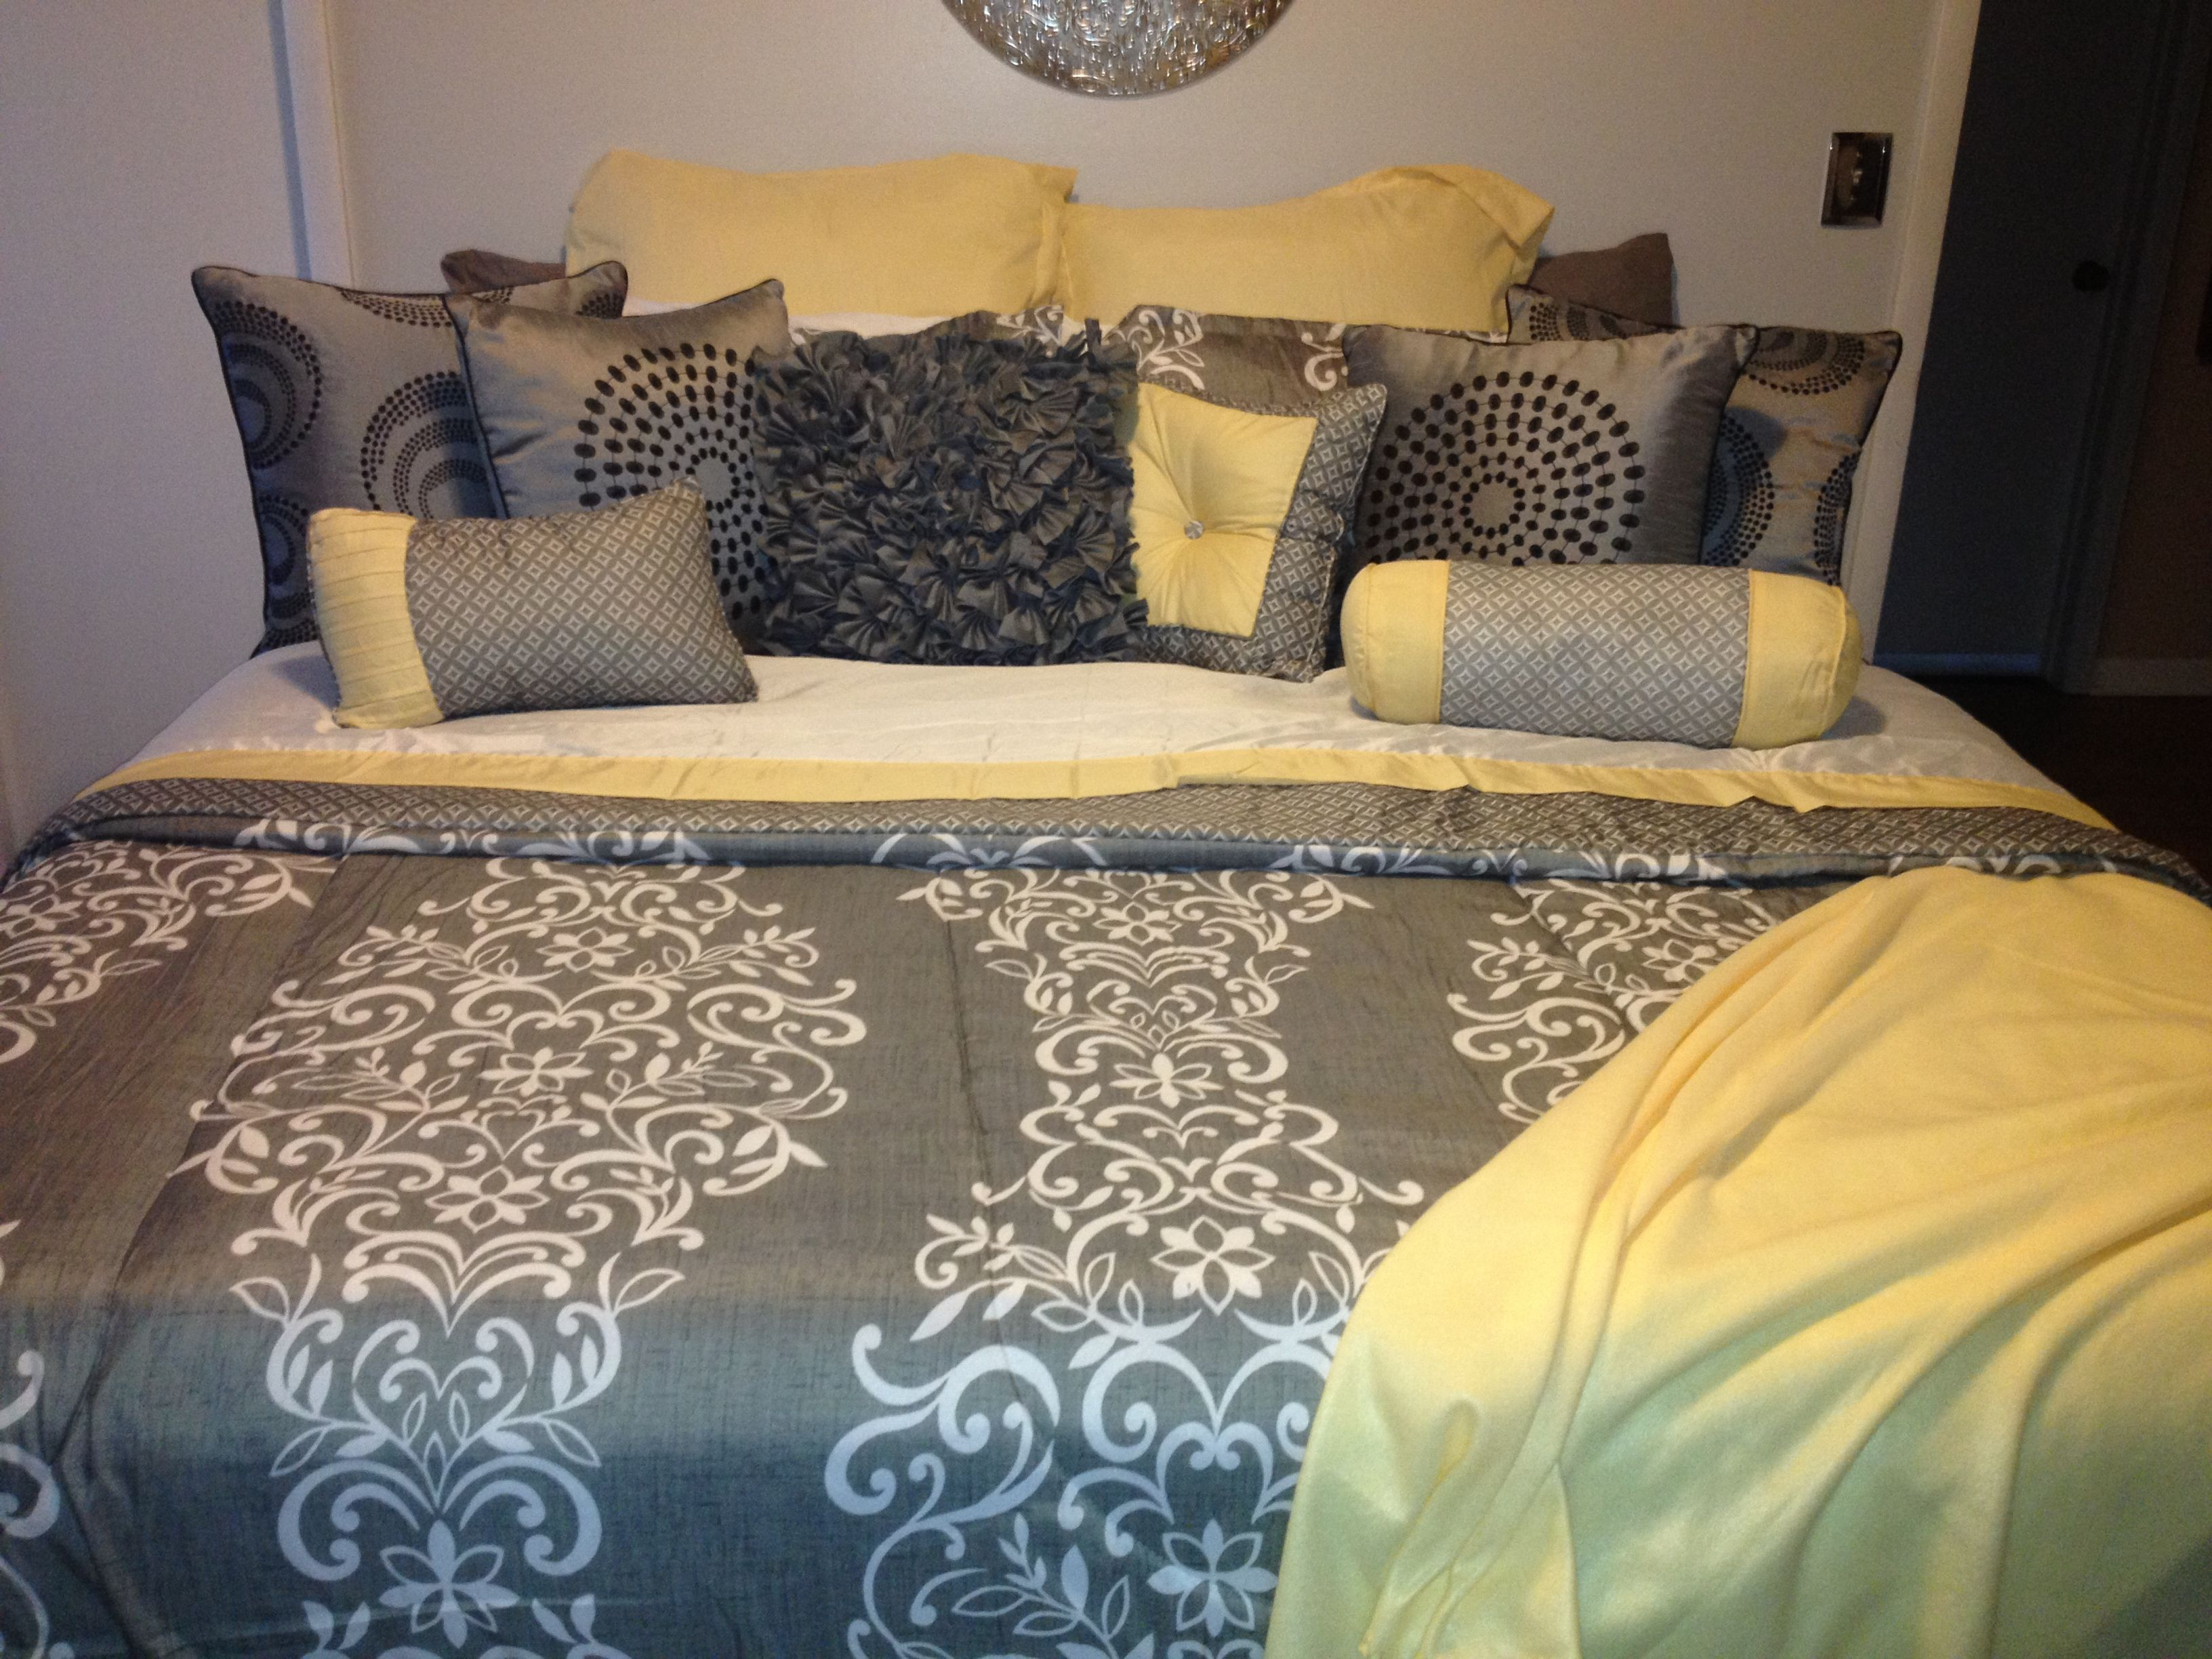 My Yellow and gray bedding :)